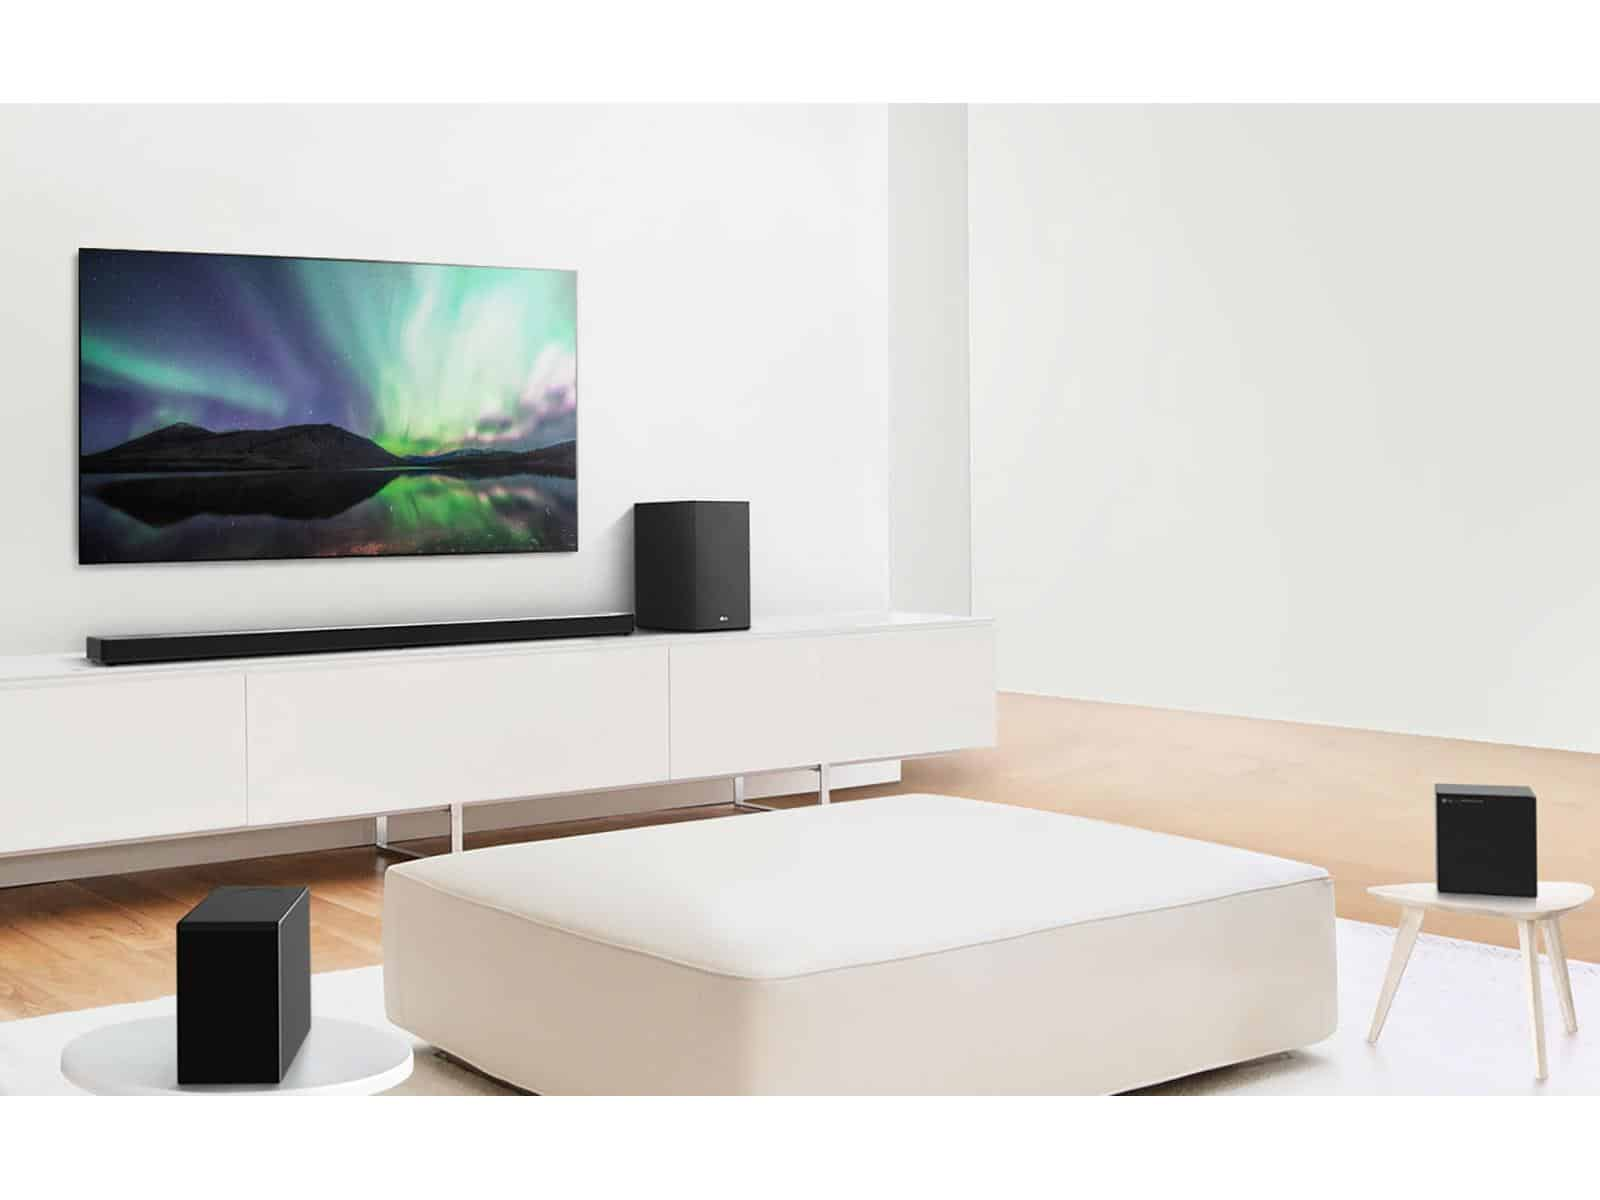 LG unveils new soundbars with AI calibration